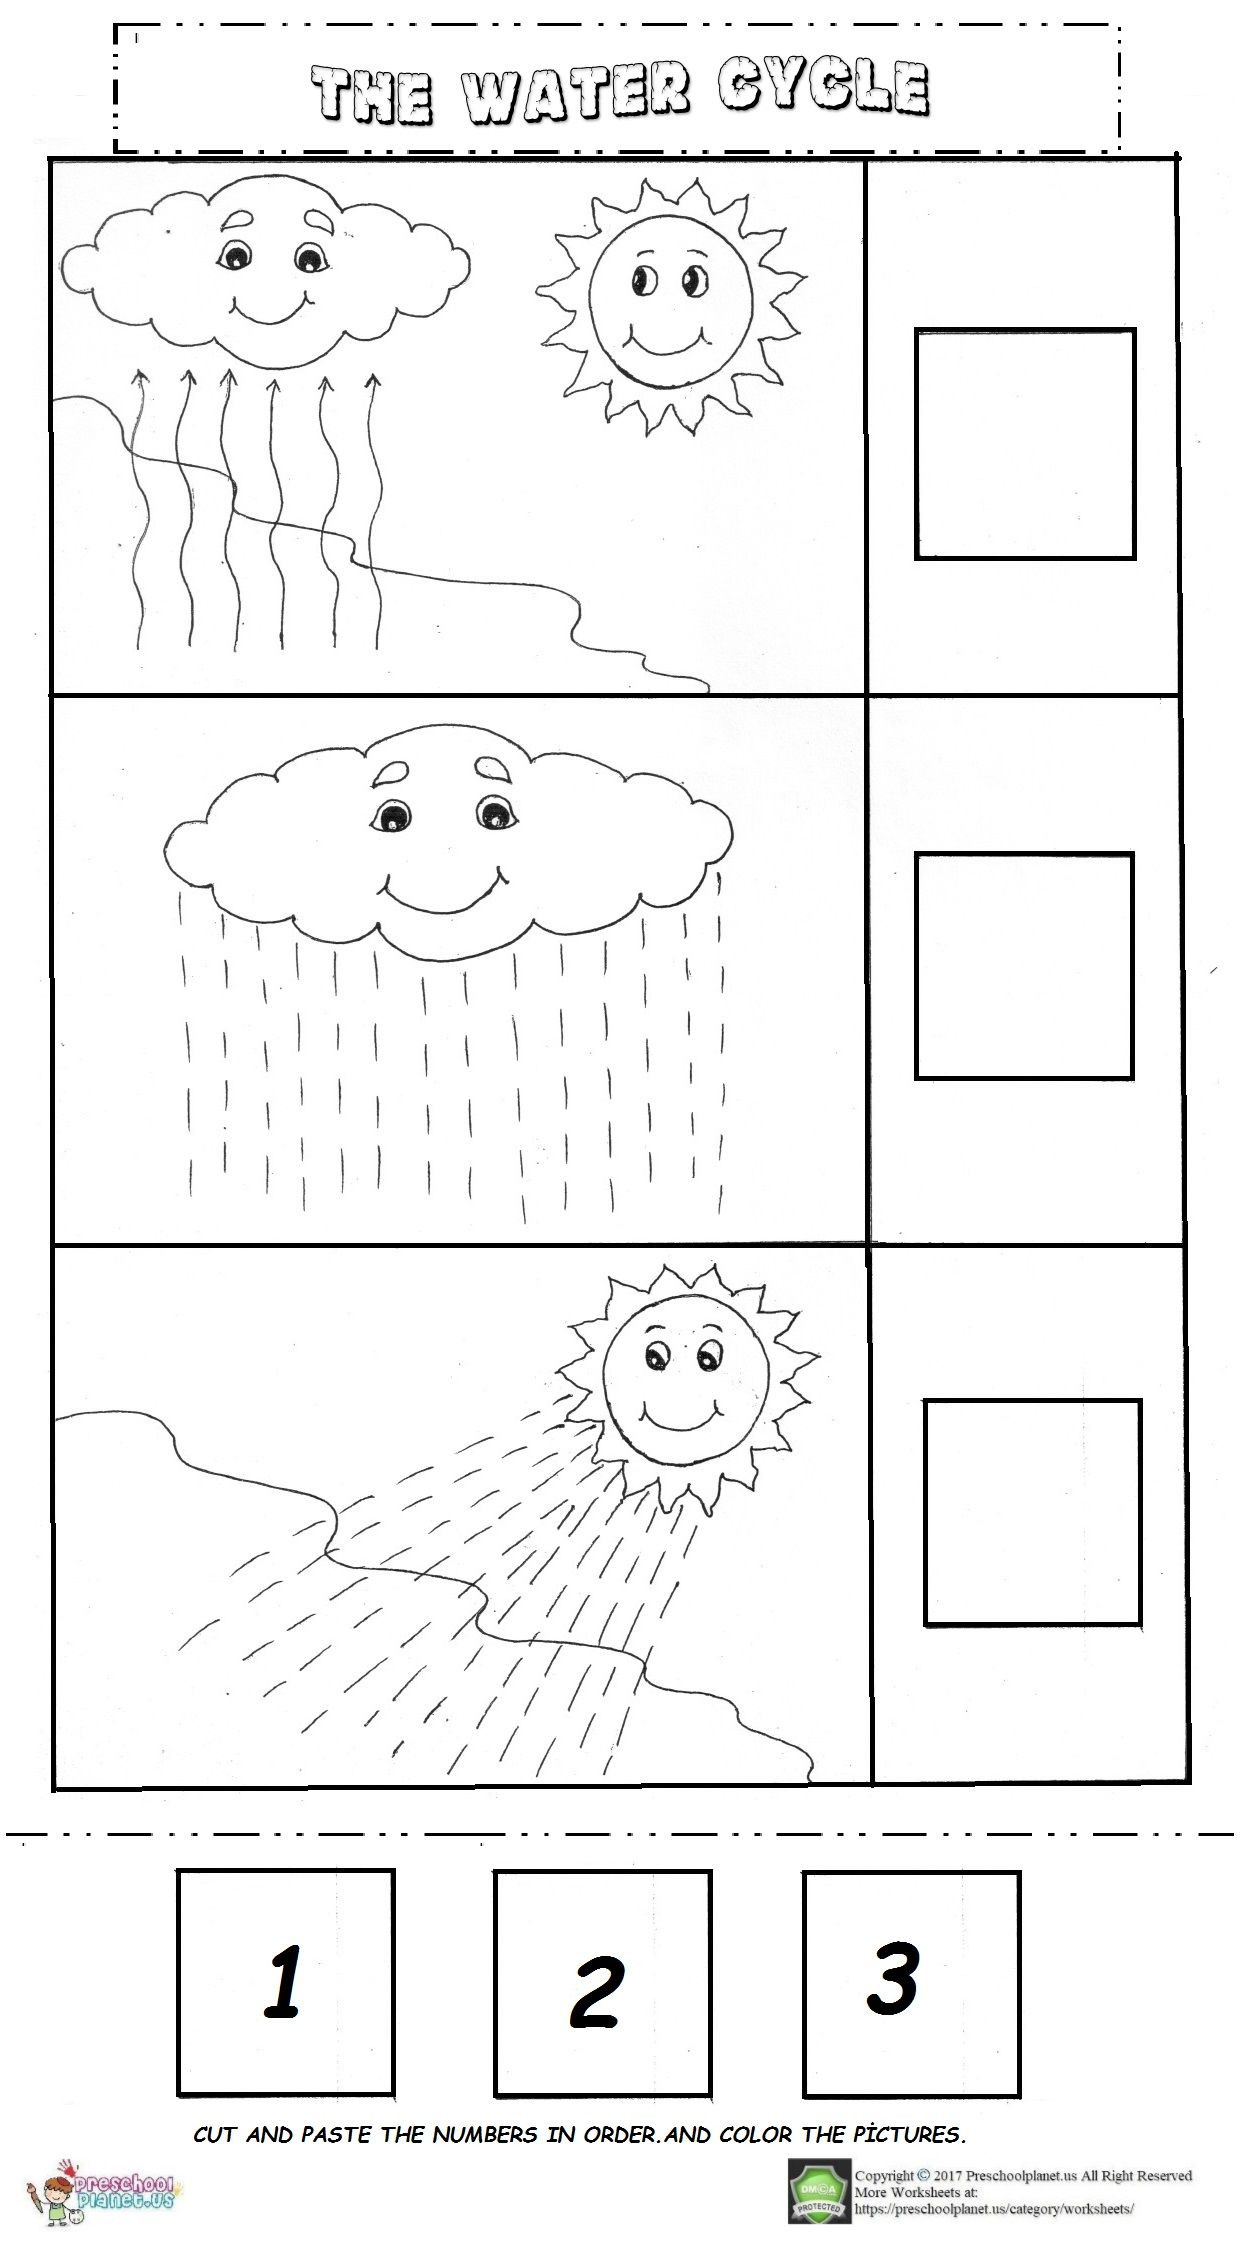 Water Cycle For Kindergarten Worksheets